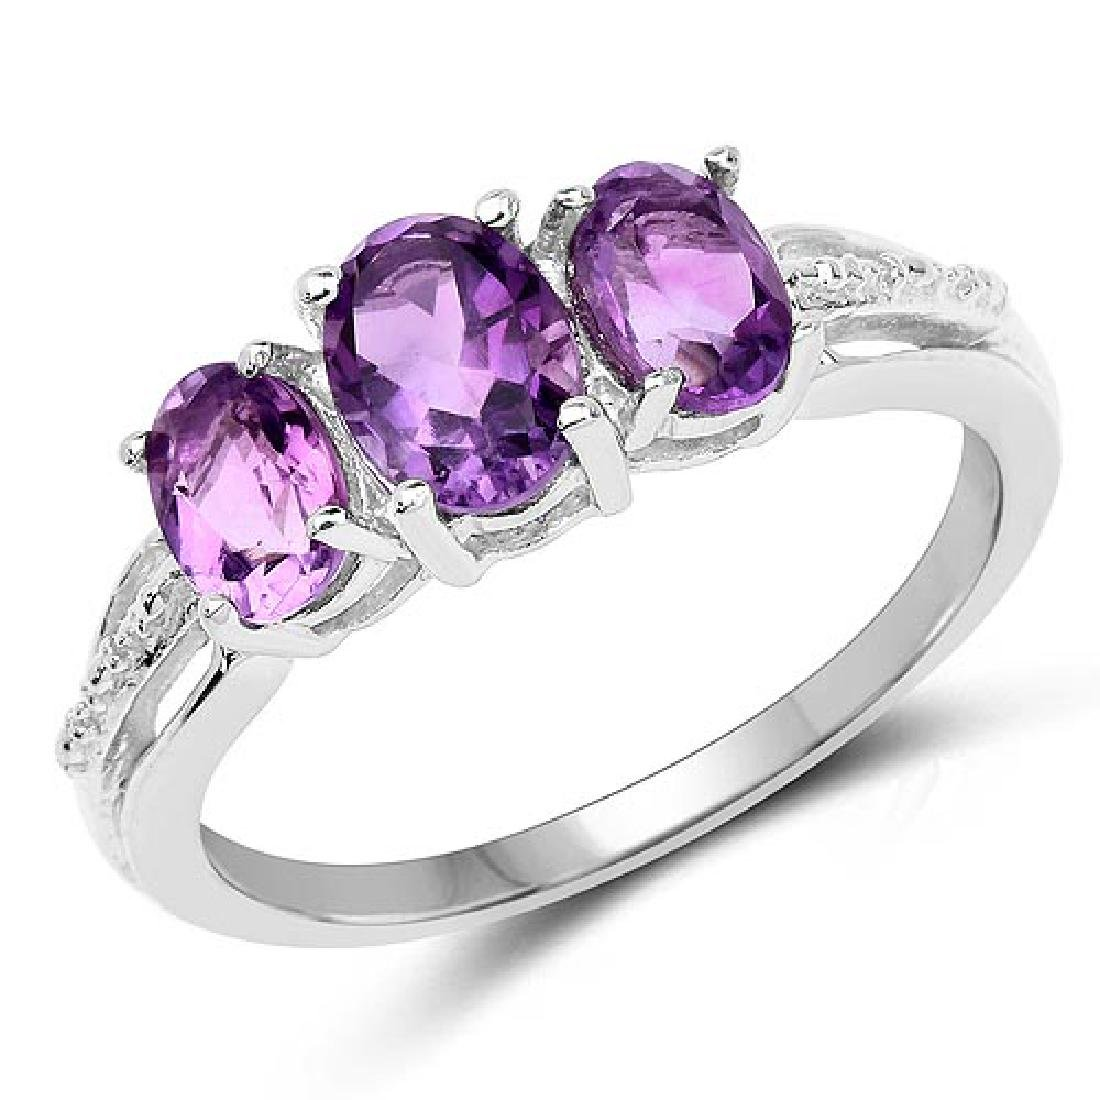 1.64 Carat Genuine Amethyst .925 Sterling Silver Ring